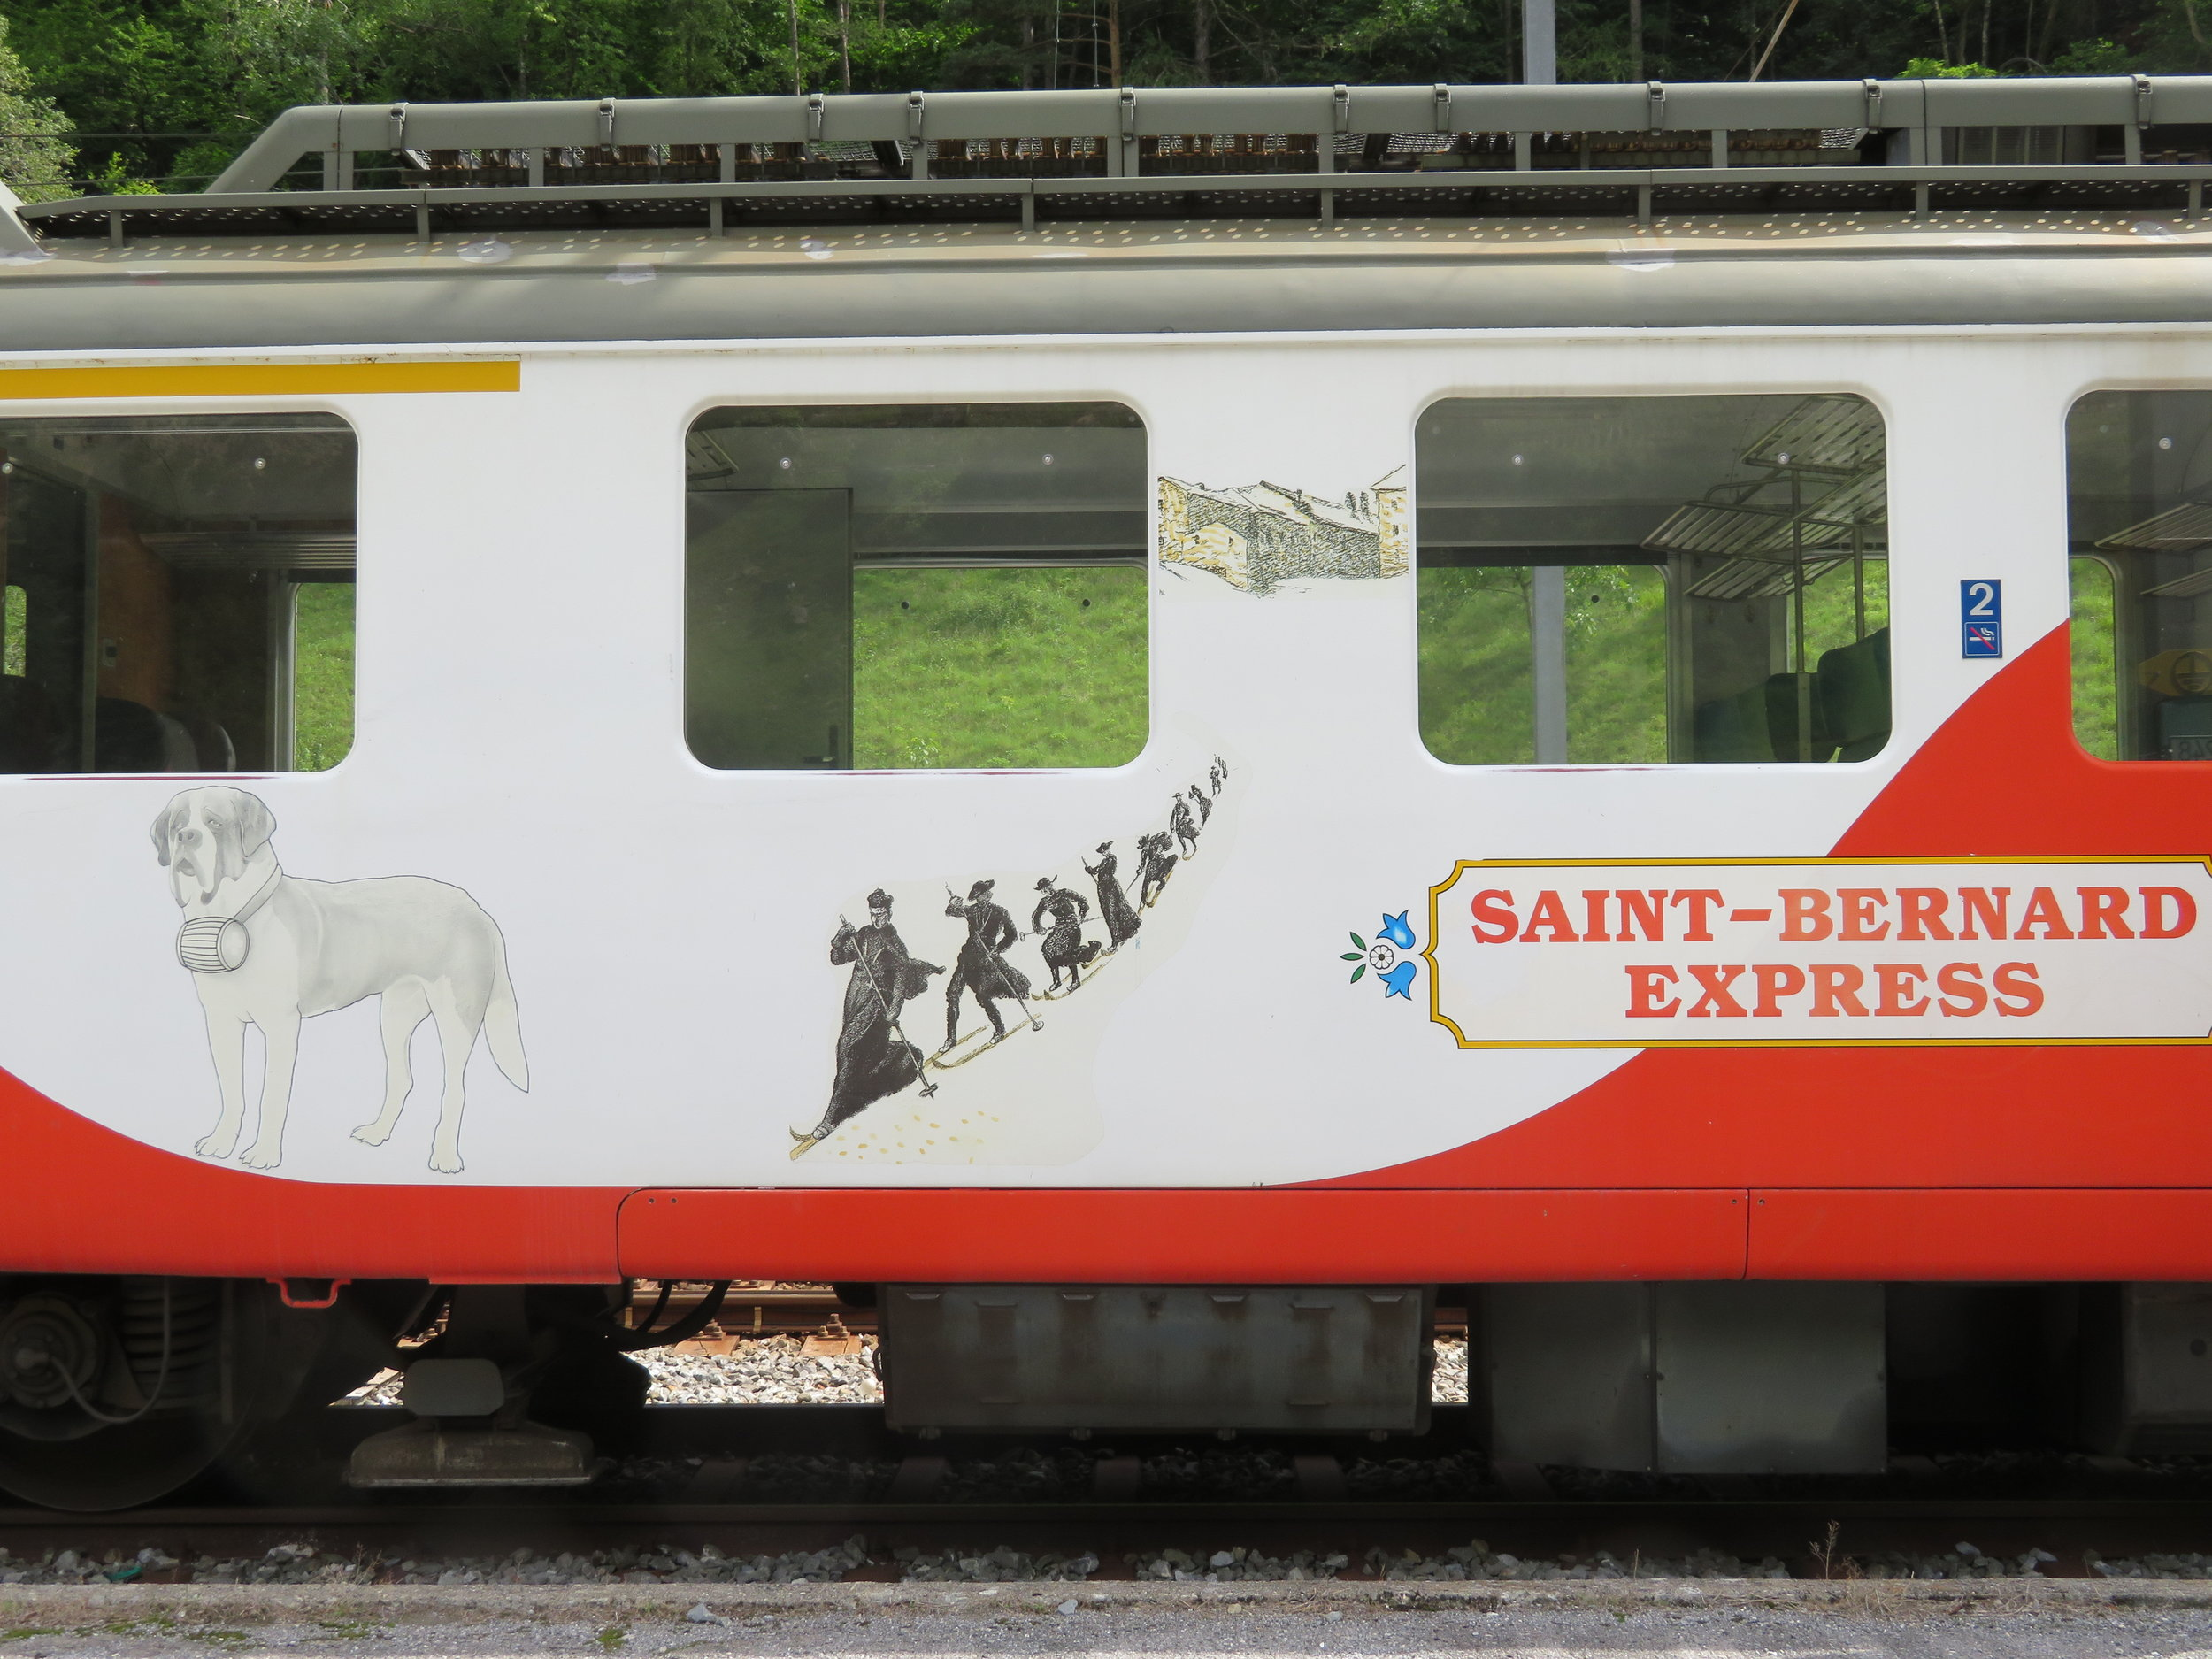 We got a chuckle out of the train car images of the regional St. Bernard Express.